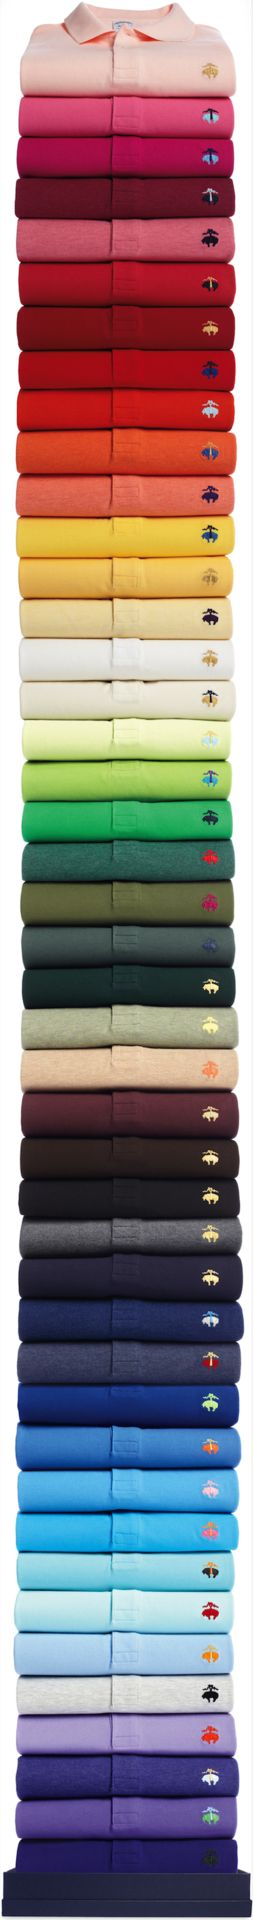 All the hues from the Brooks Brothers Collection.